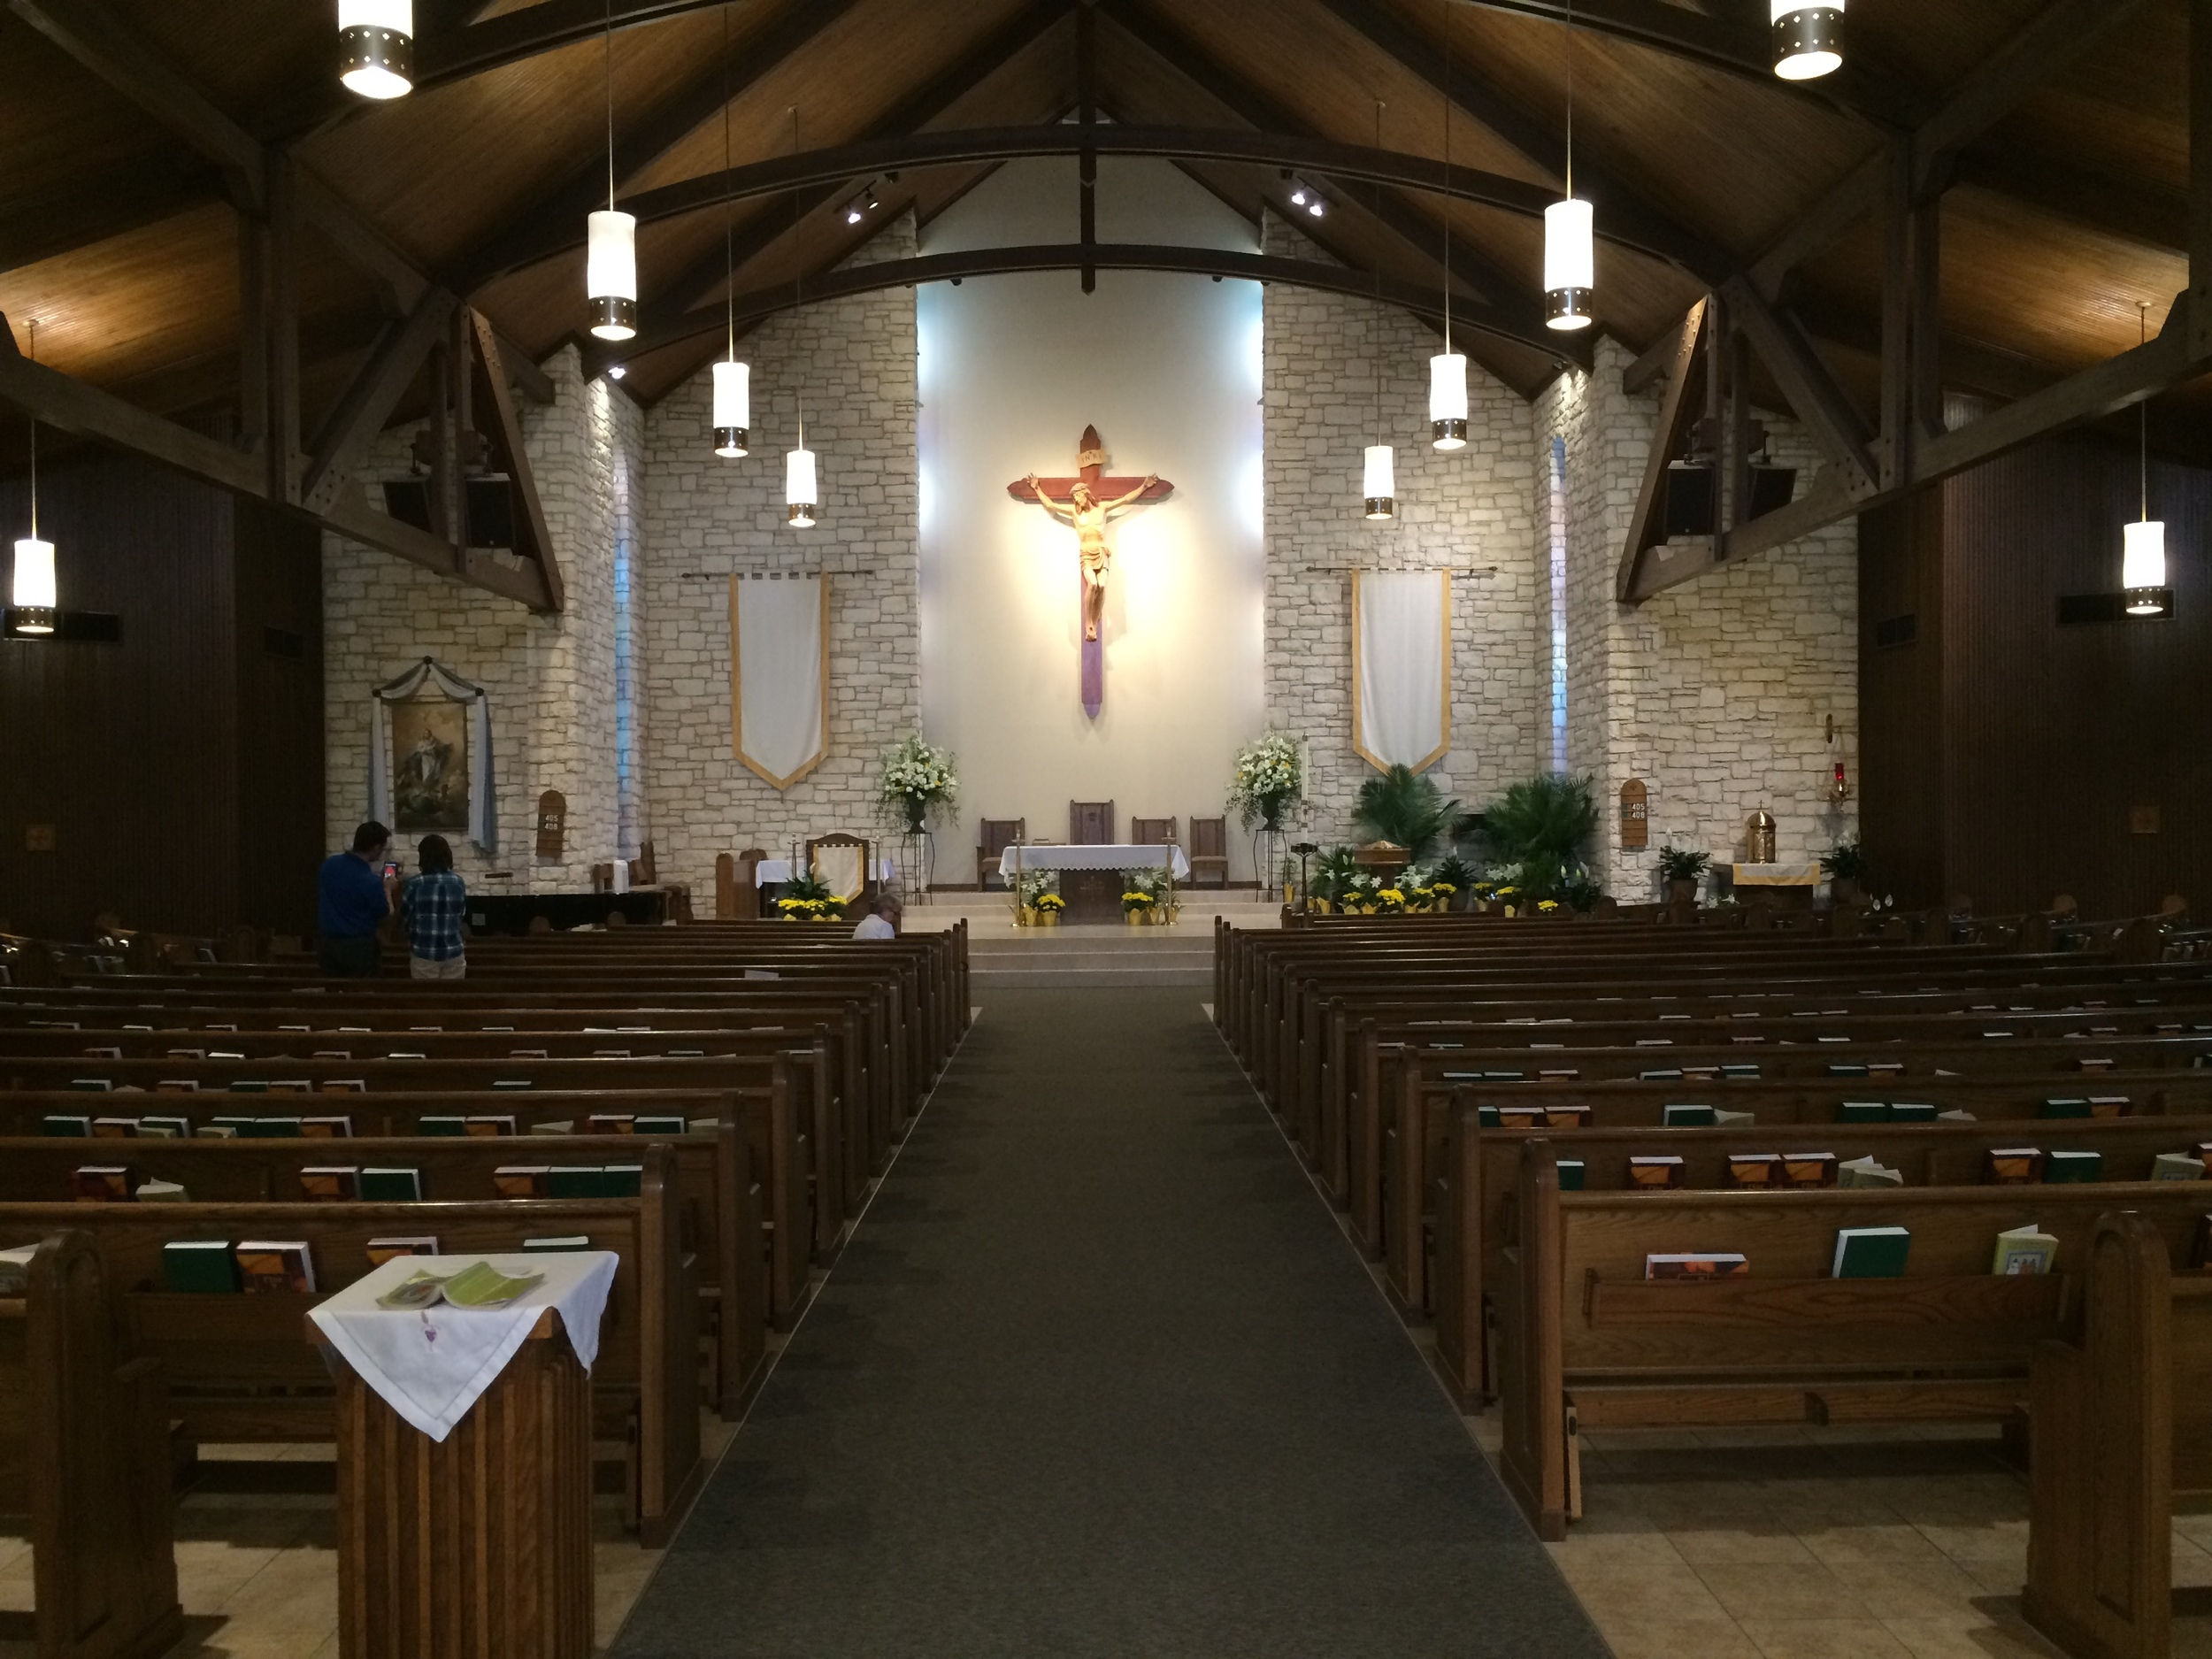 BEFORE: The interior of the church as it was in early 2015.